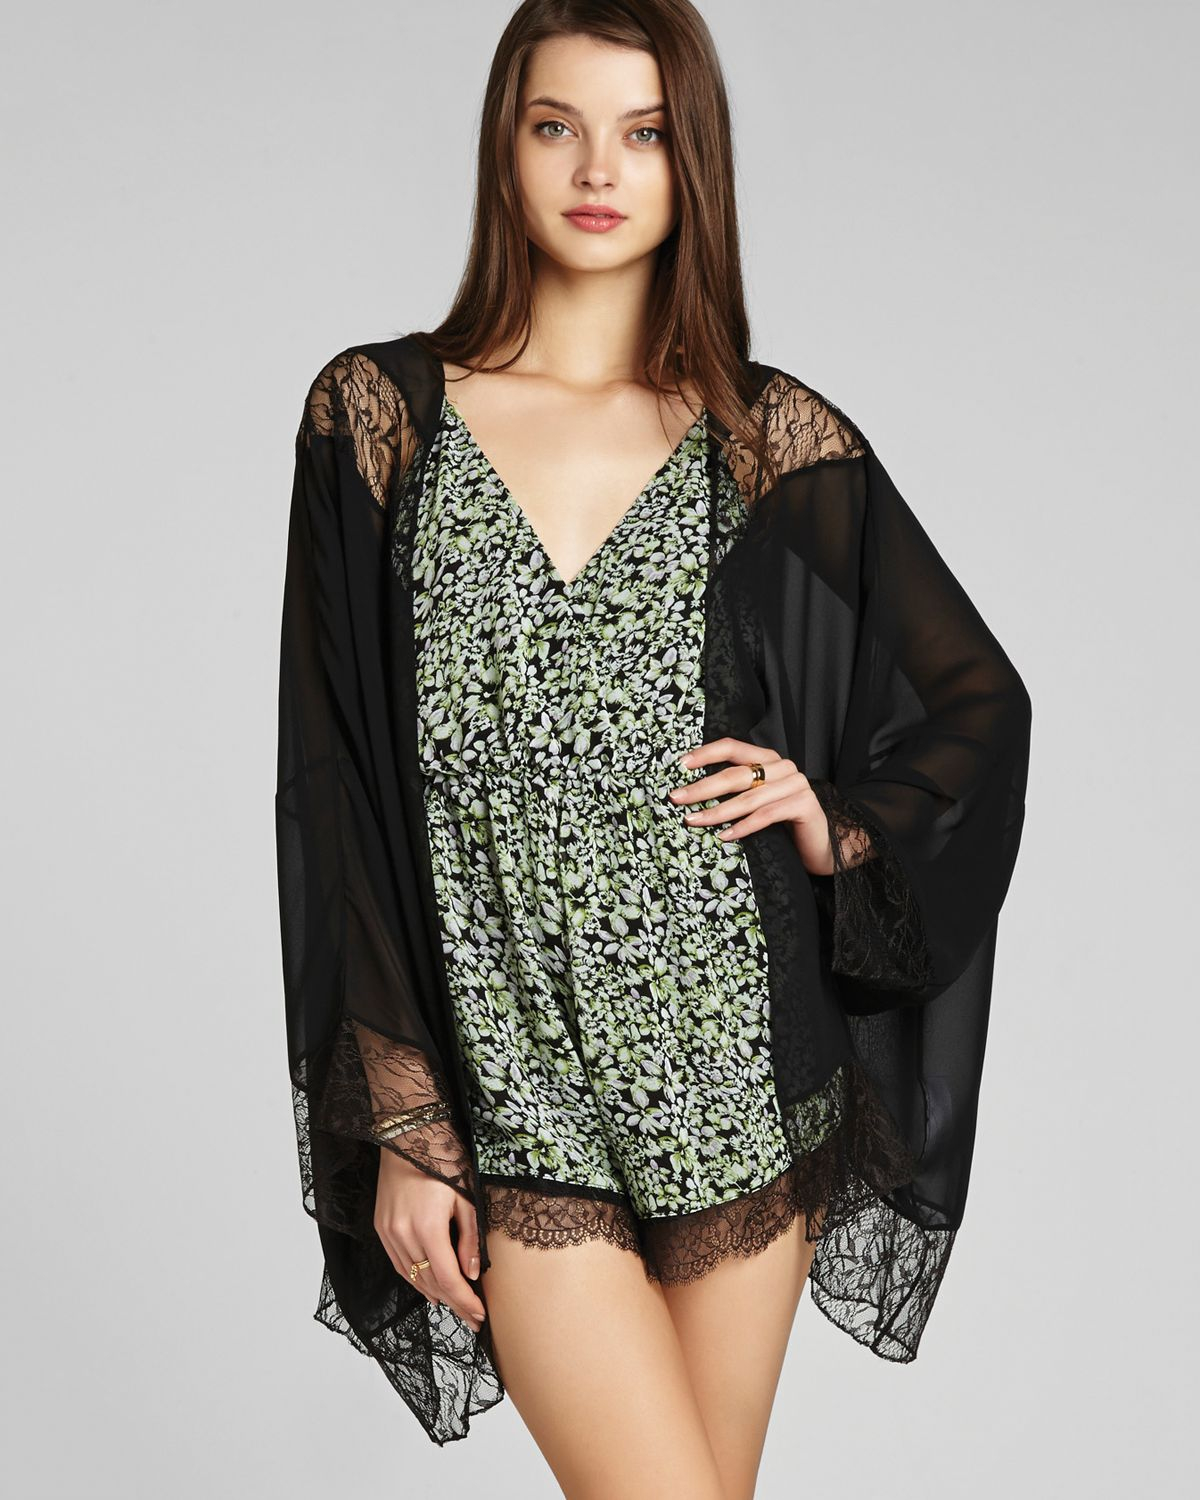 Bcbgeneration Kimono Cardigan High Low Lace in Black   Lyst